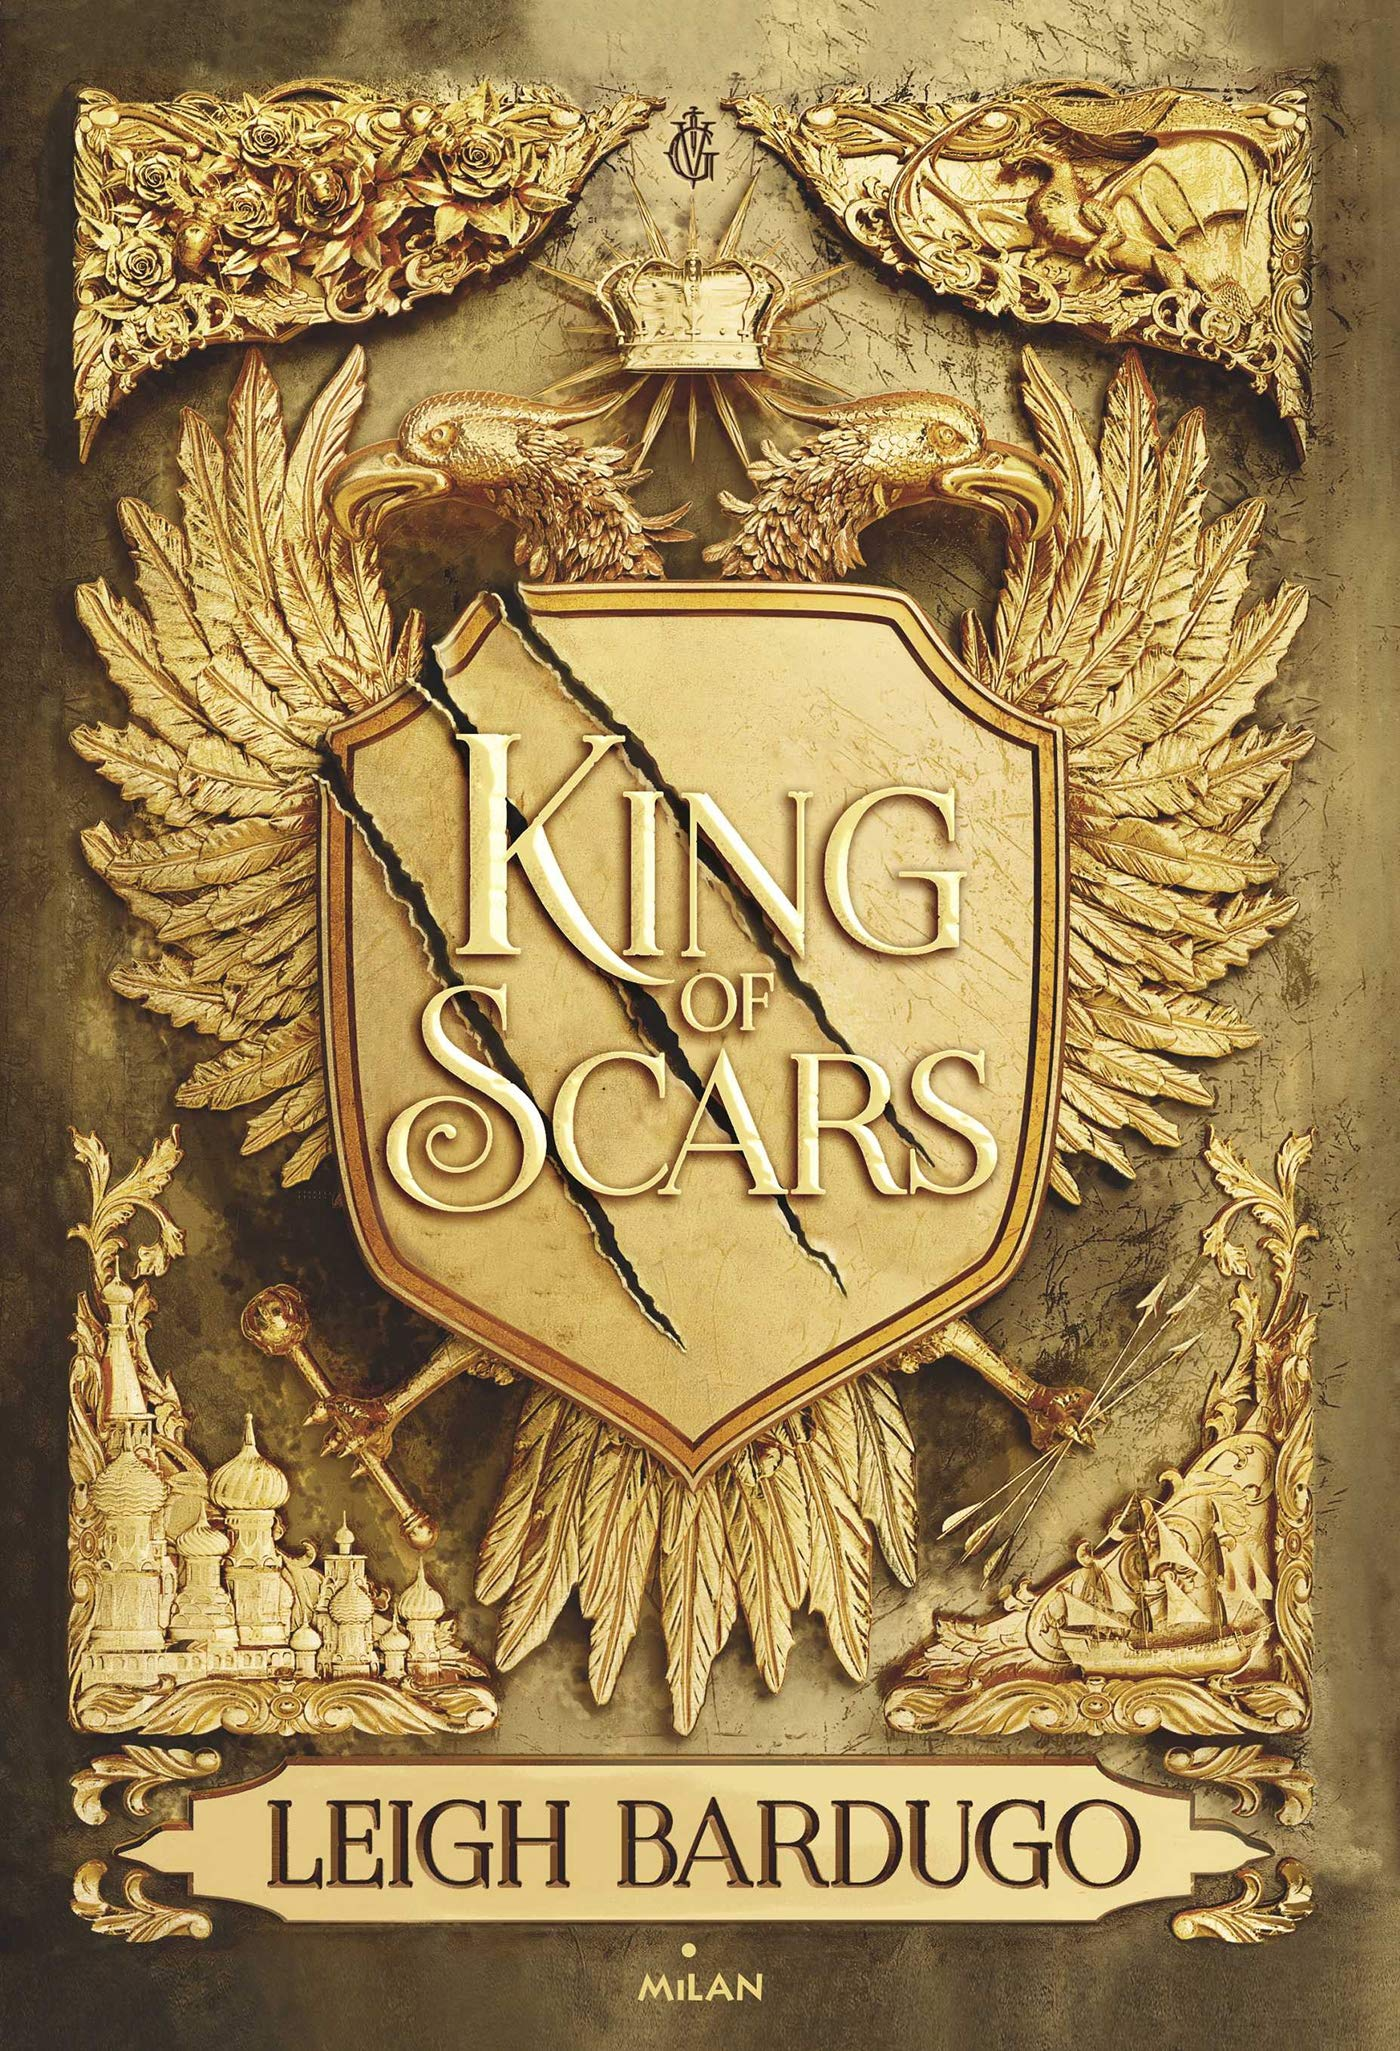 Image de l'article « King of Scars – Leigh Bardugo »